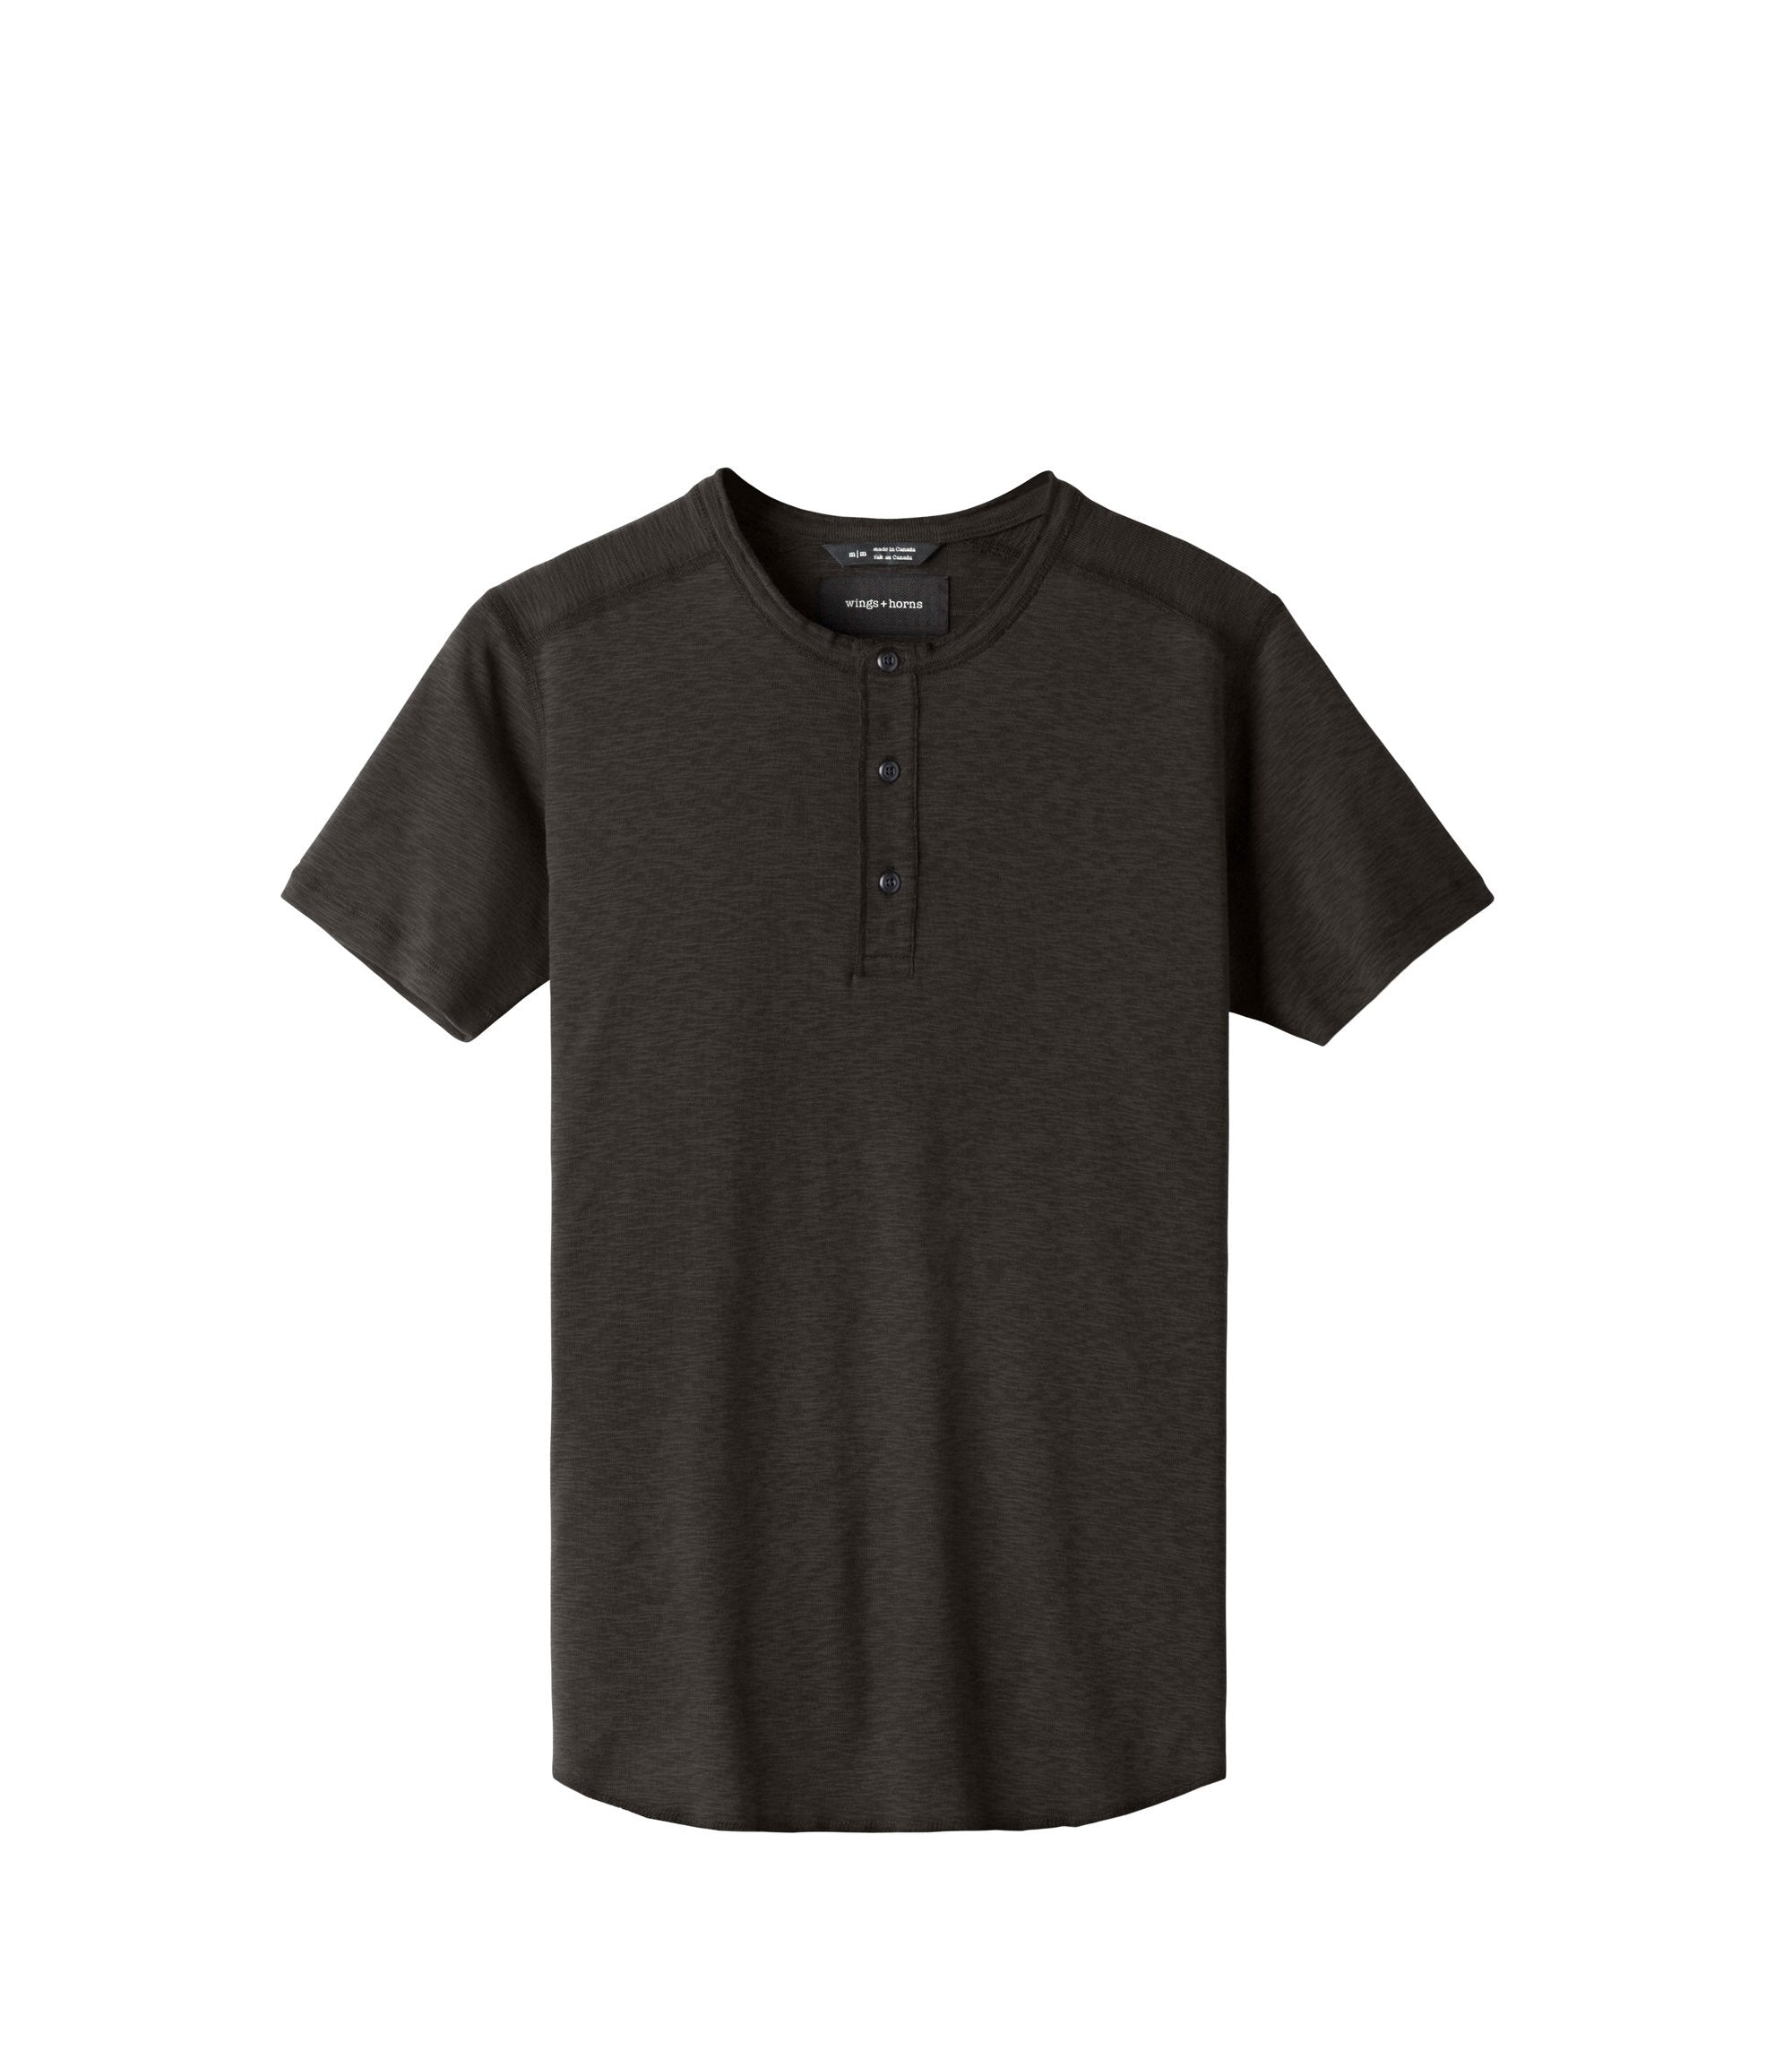 WINGS + HORNS M'S T-SHIRTS STO L BASE S/S HENLEY